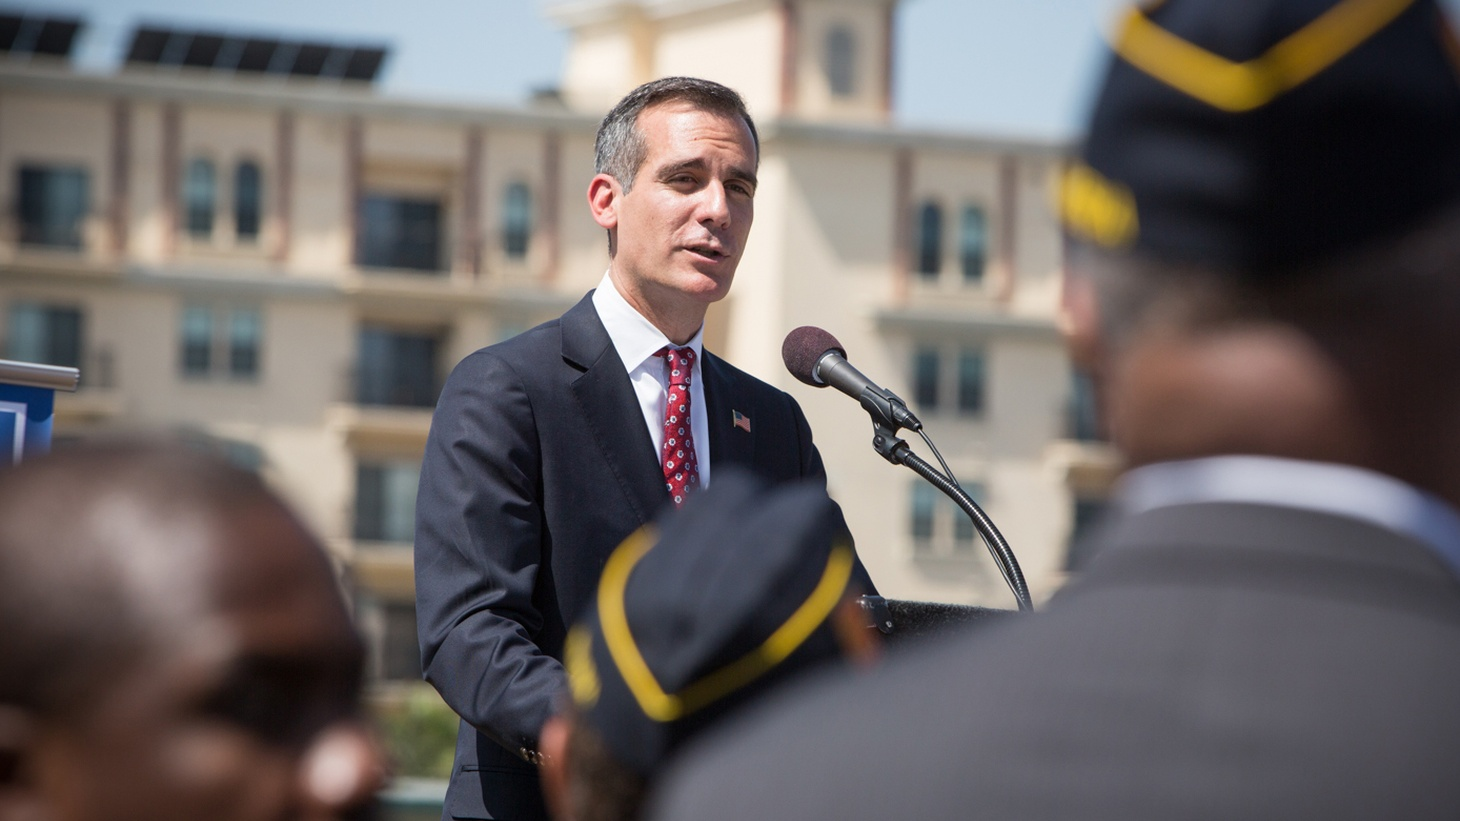 Last summer, Mayor Eric Garcetti pledged to end veteran homelessness in Los Angeles by the end of this year. Garcetti has since had to extend that deadline to next summer. And: what kind of person would think they are qualified to be the leader of the most powerful country on earth?